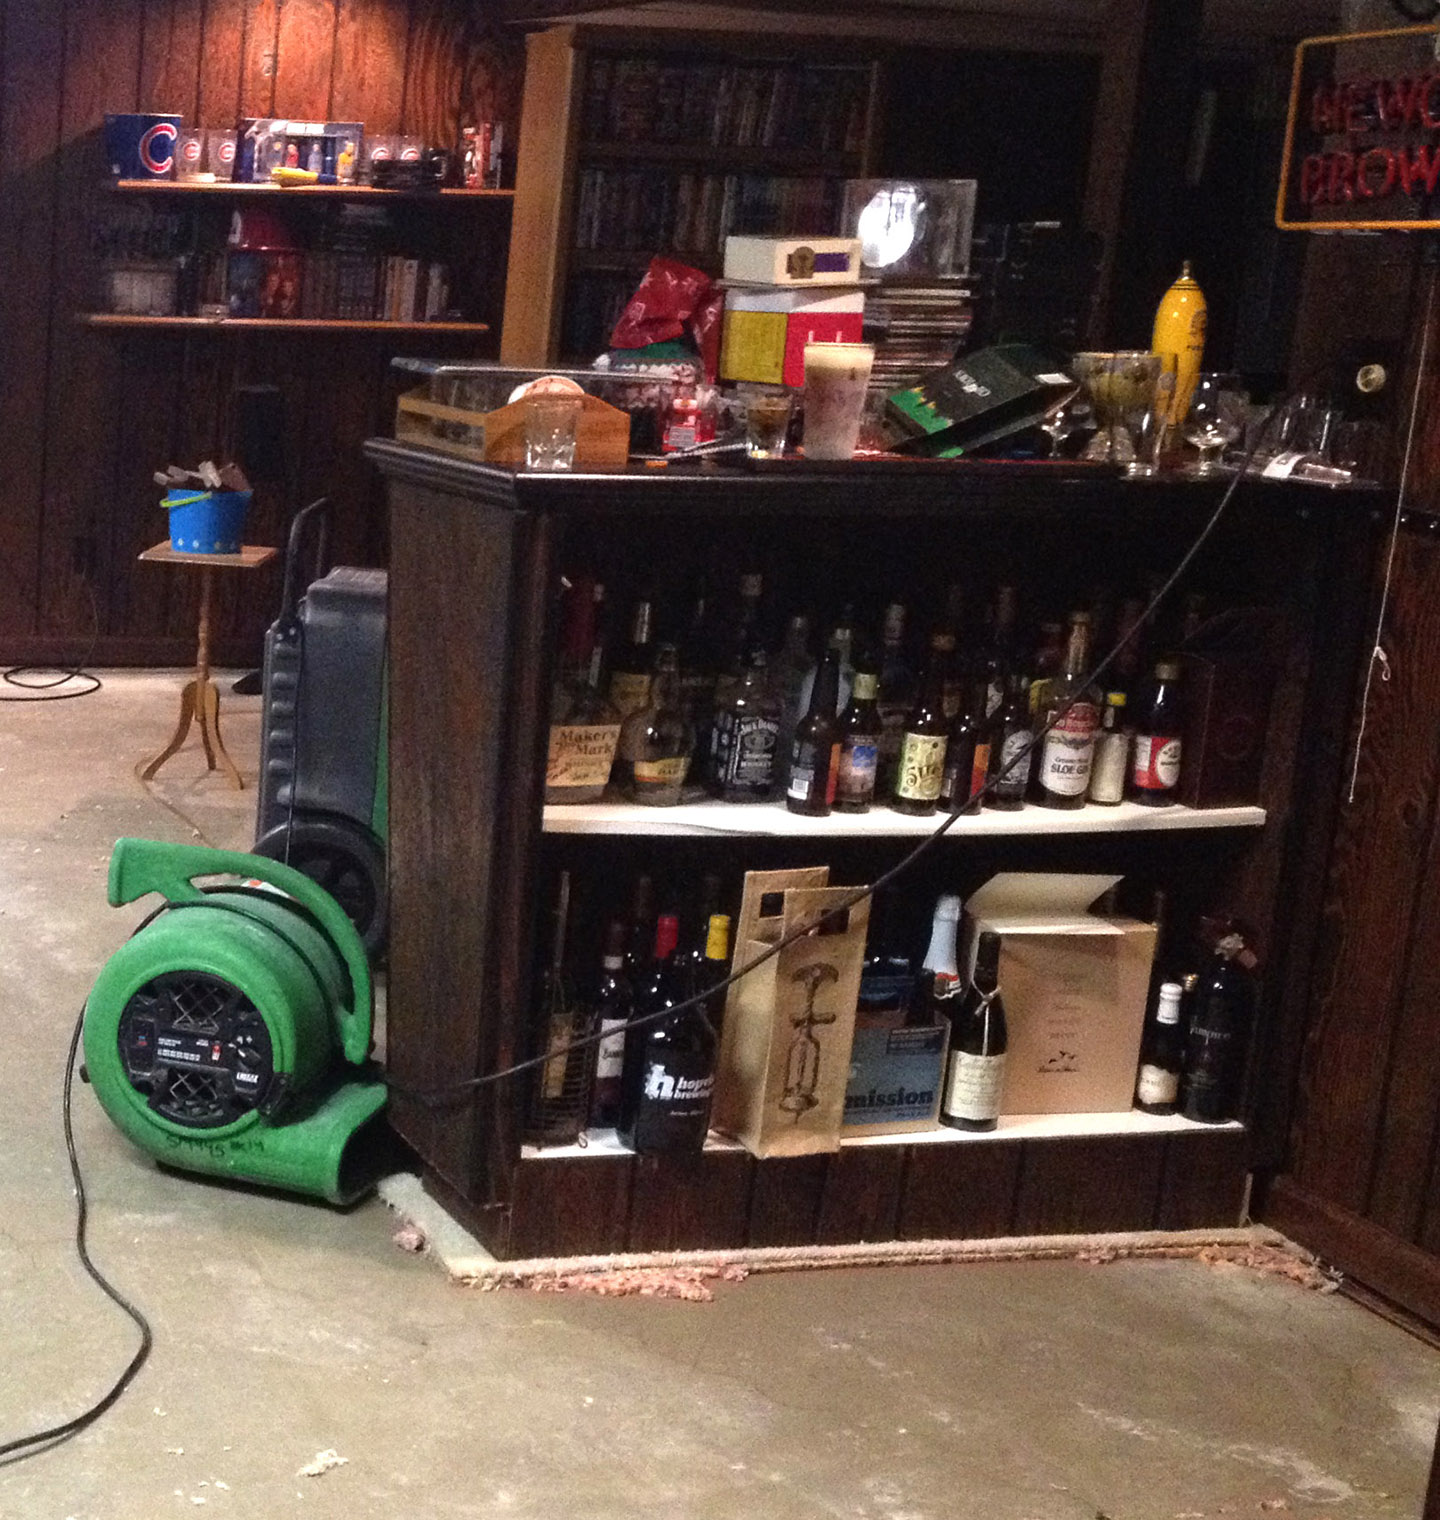 A Few Months Ago, My Basement Got Water Damage Thanks To A Faulty Sump Pump  And All The Carpet Was Removed. Before Getting New Carpet, I Decided That  While ...